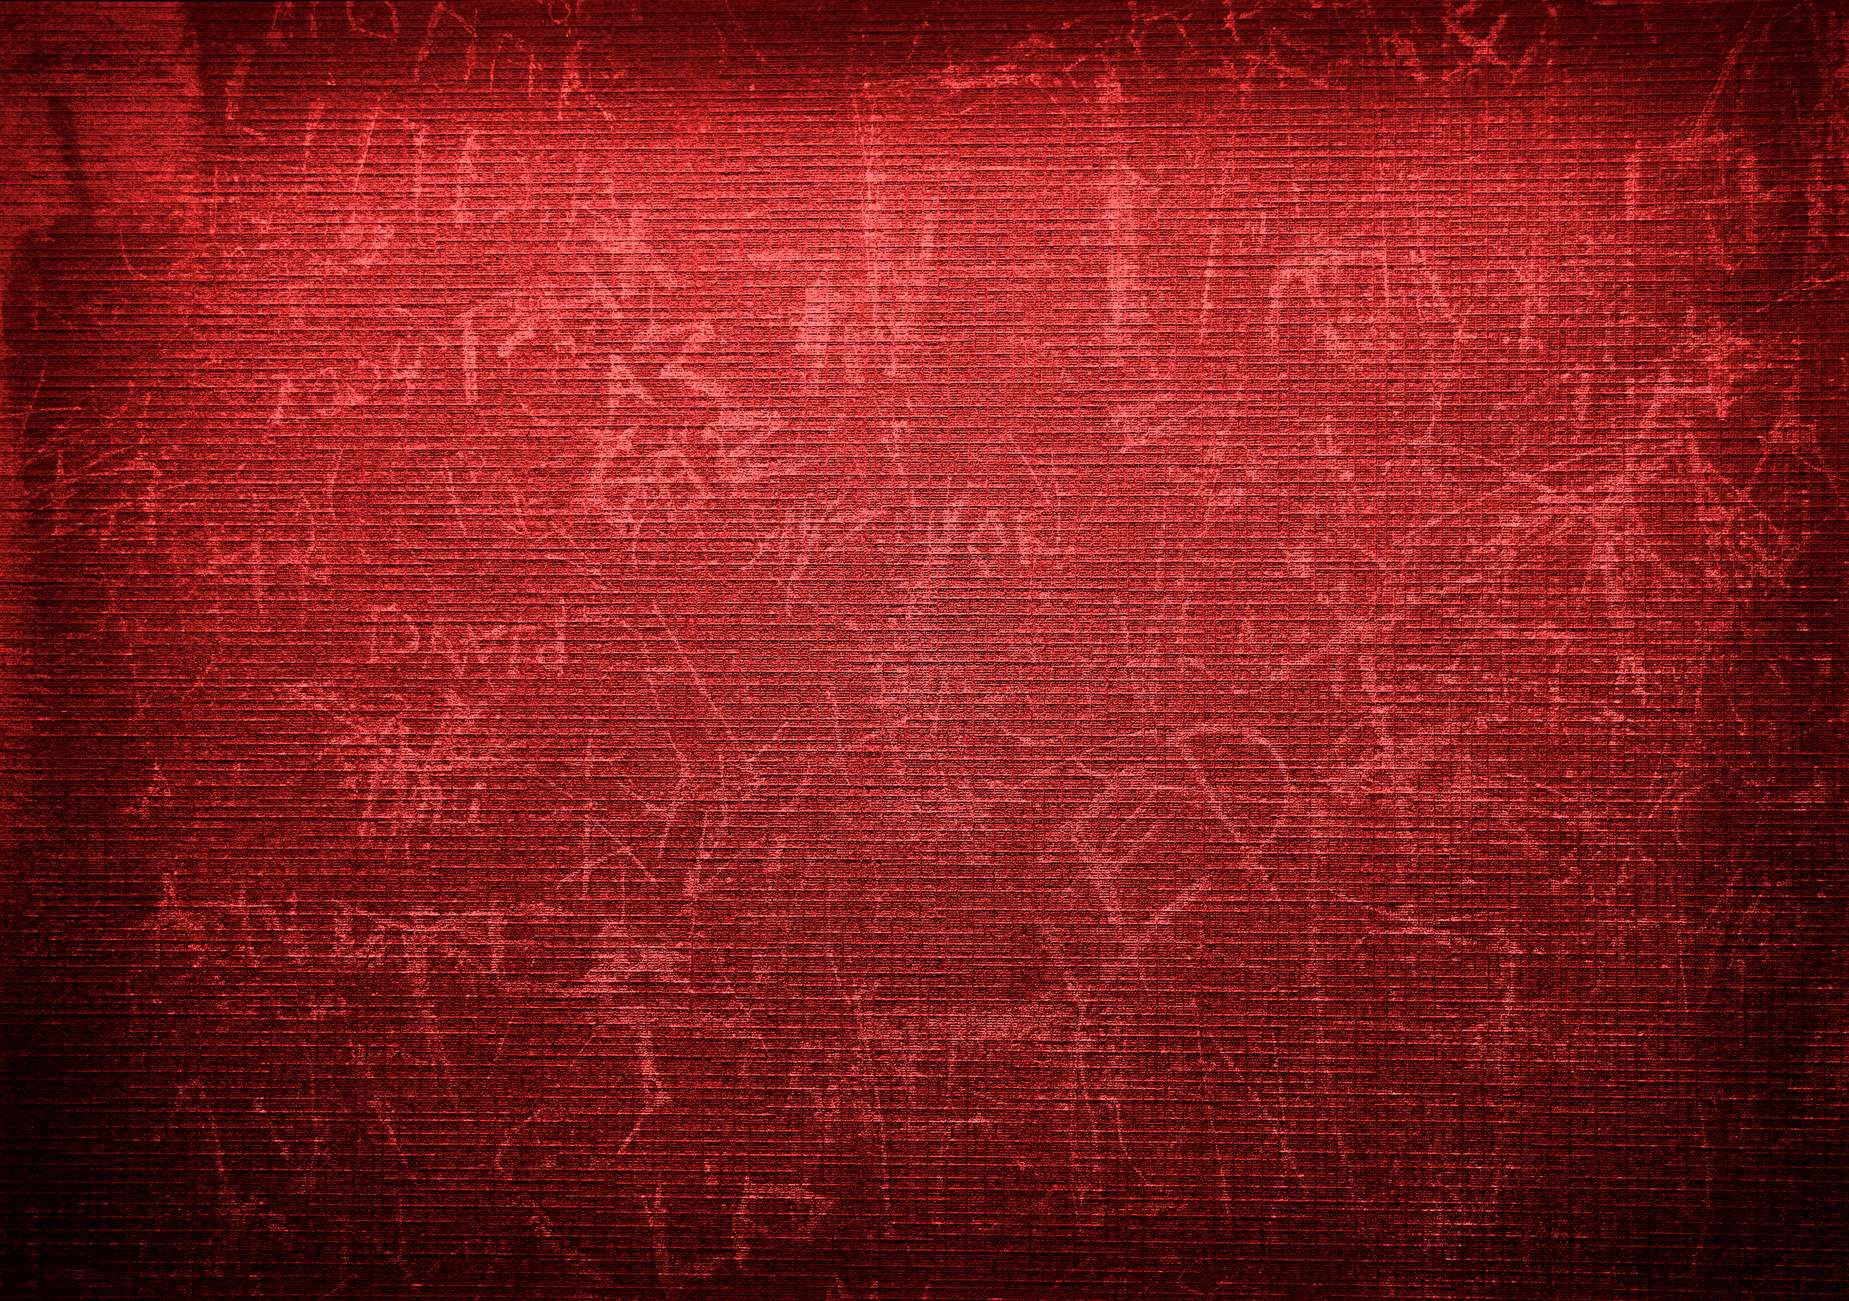 scratched red wall background texture photohdx